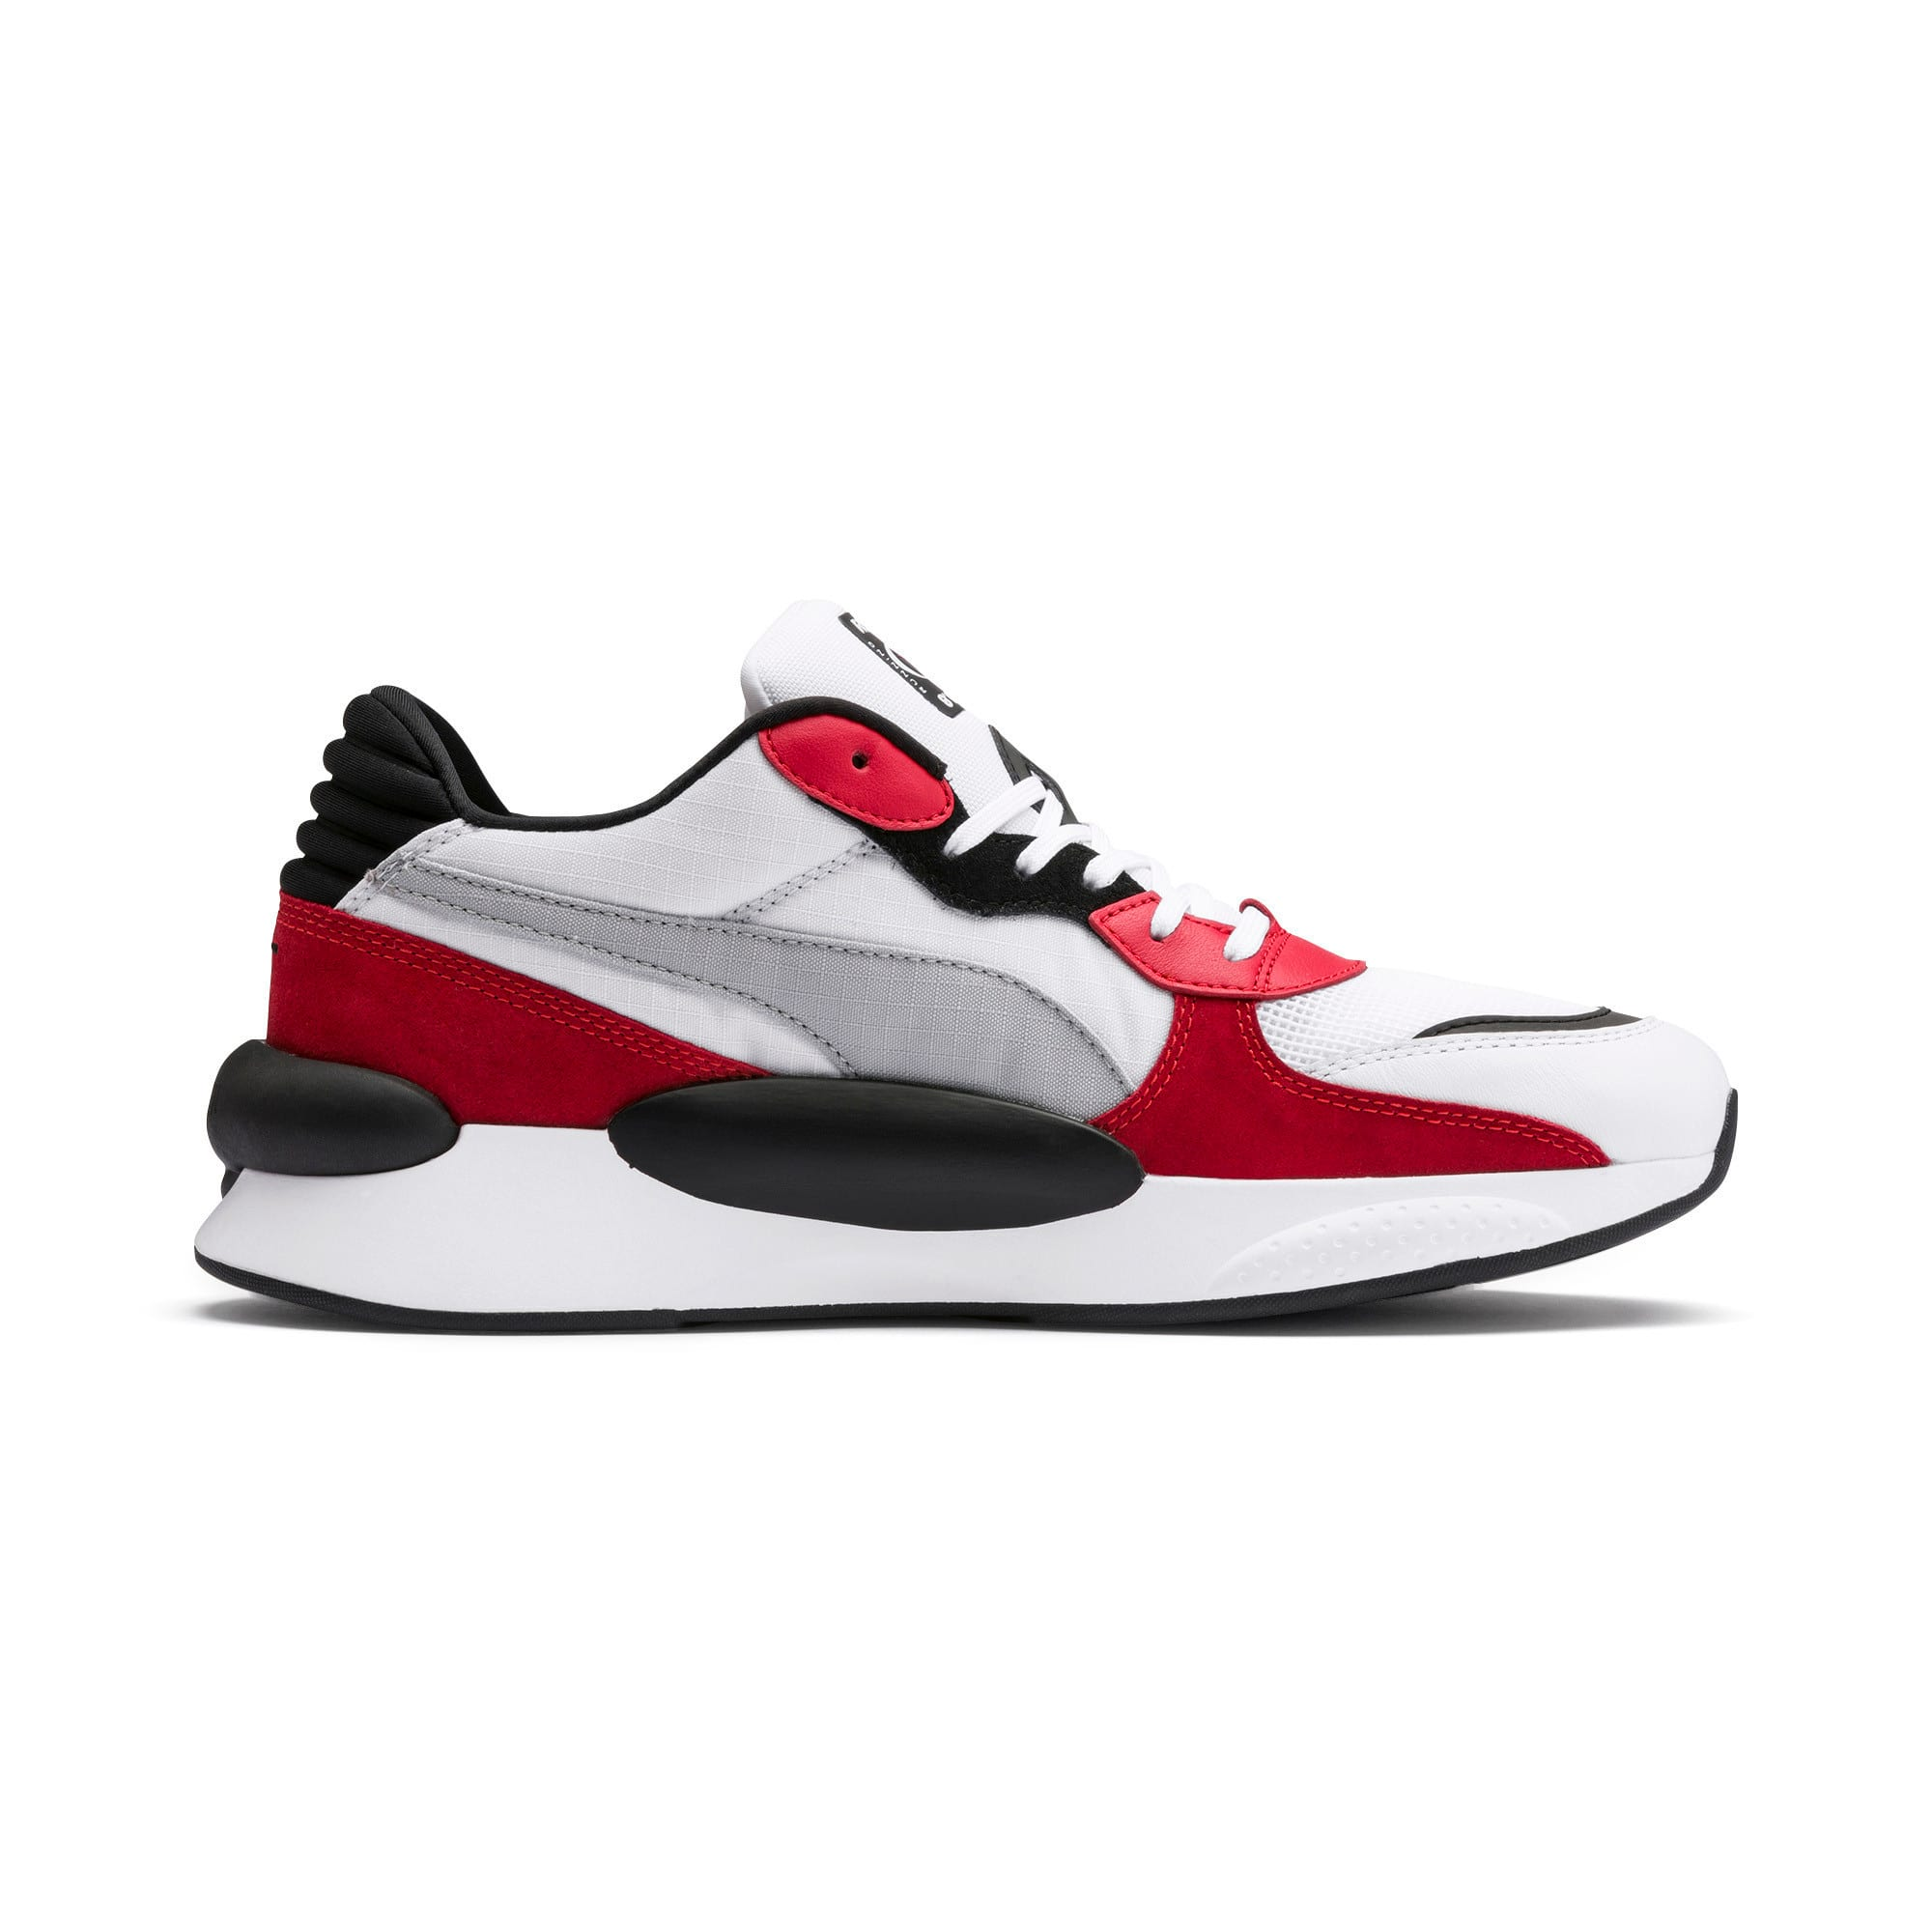 Thumbnail 7 of RS 9.8 Space Trainers, Puma White-High Risk Red, medium-IND